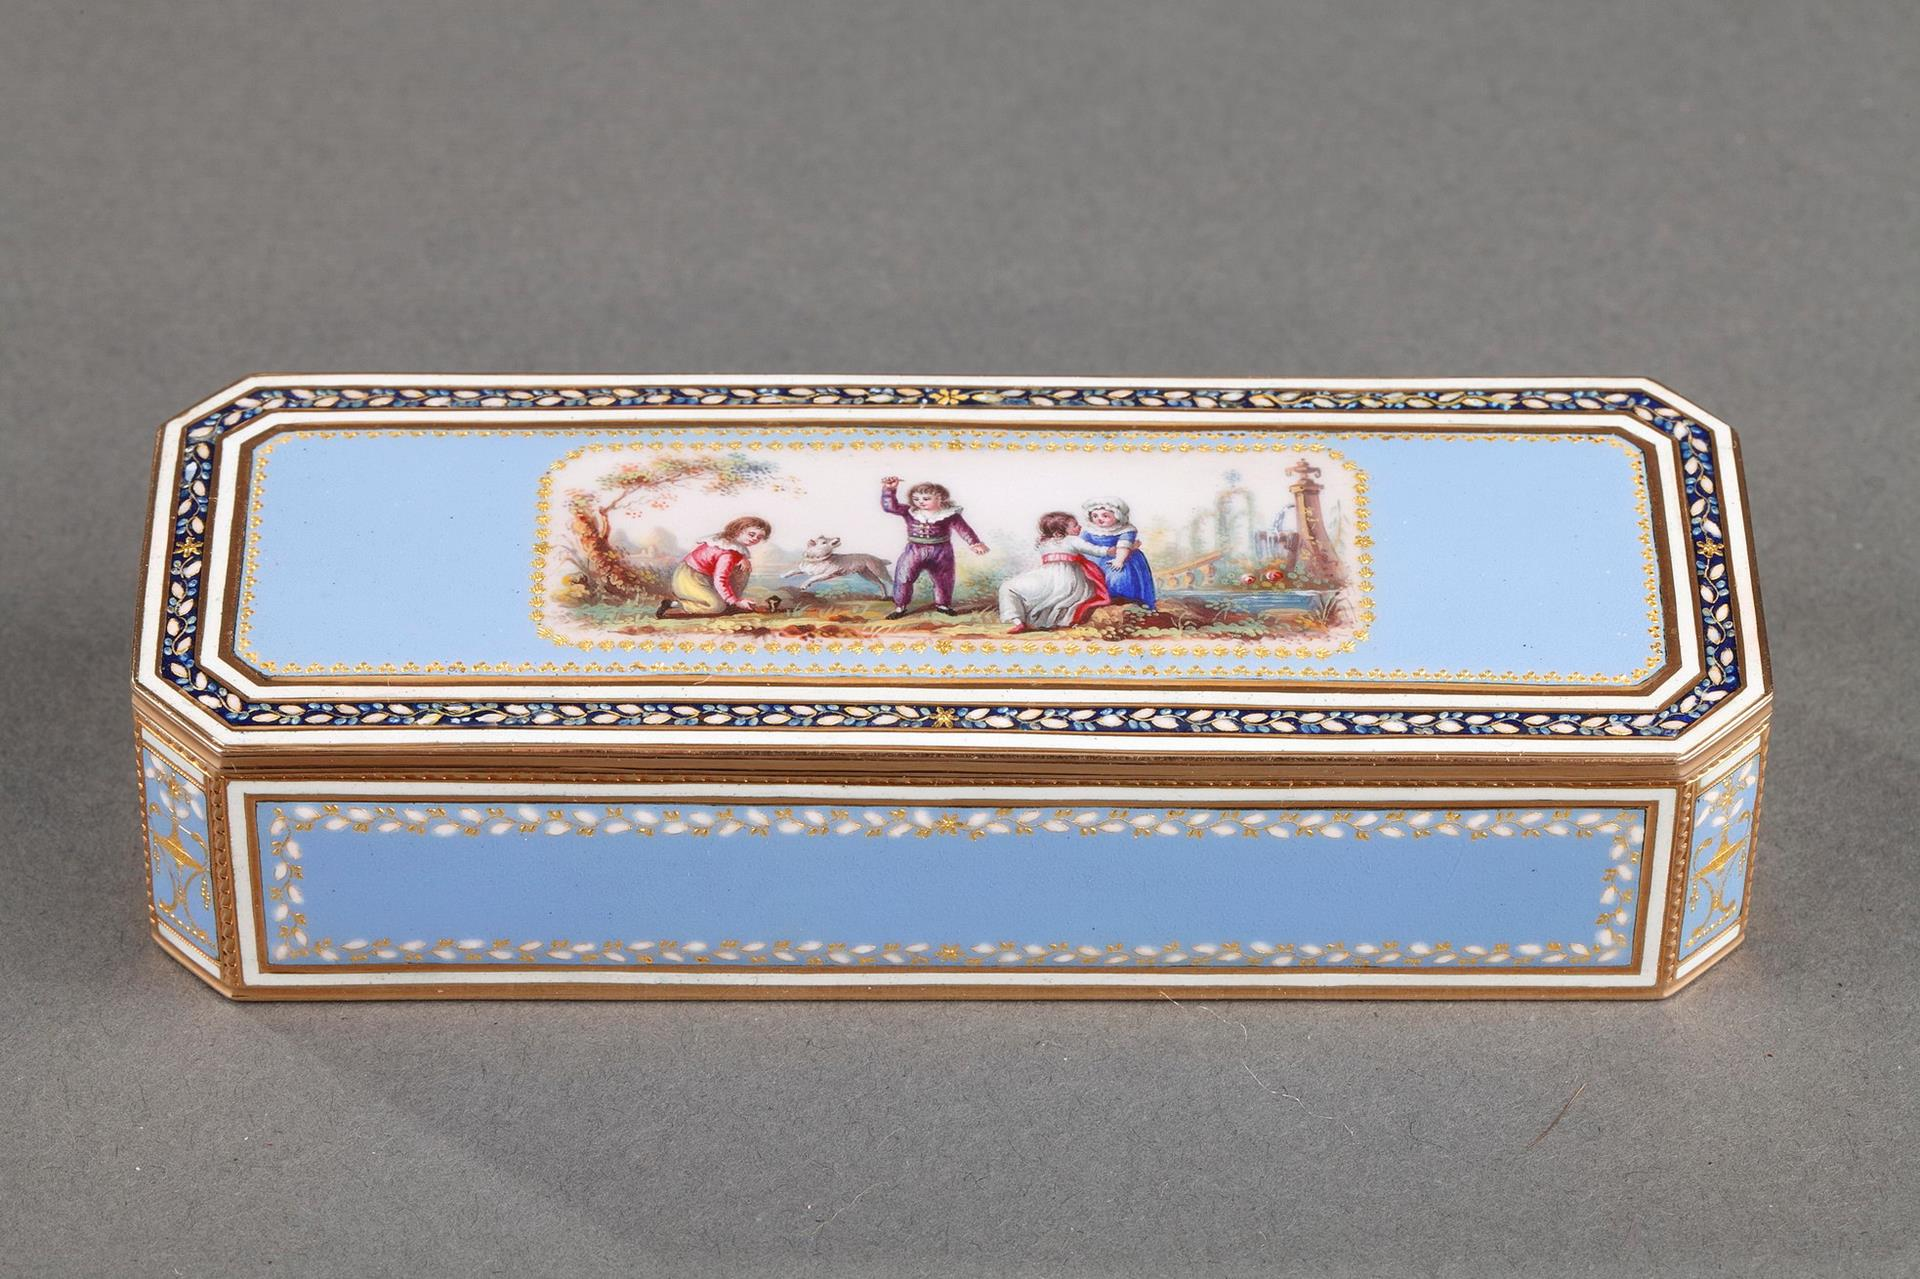 GOLD AND SKY BLUE ENAMEL SNUFFBOX.<br/> EARLY 19TH CENTURY SWISS CRAFTSMANSHIP.